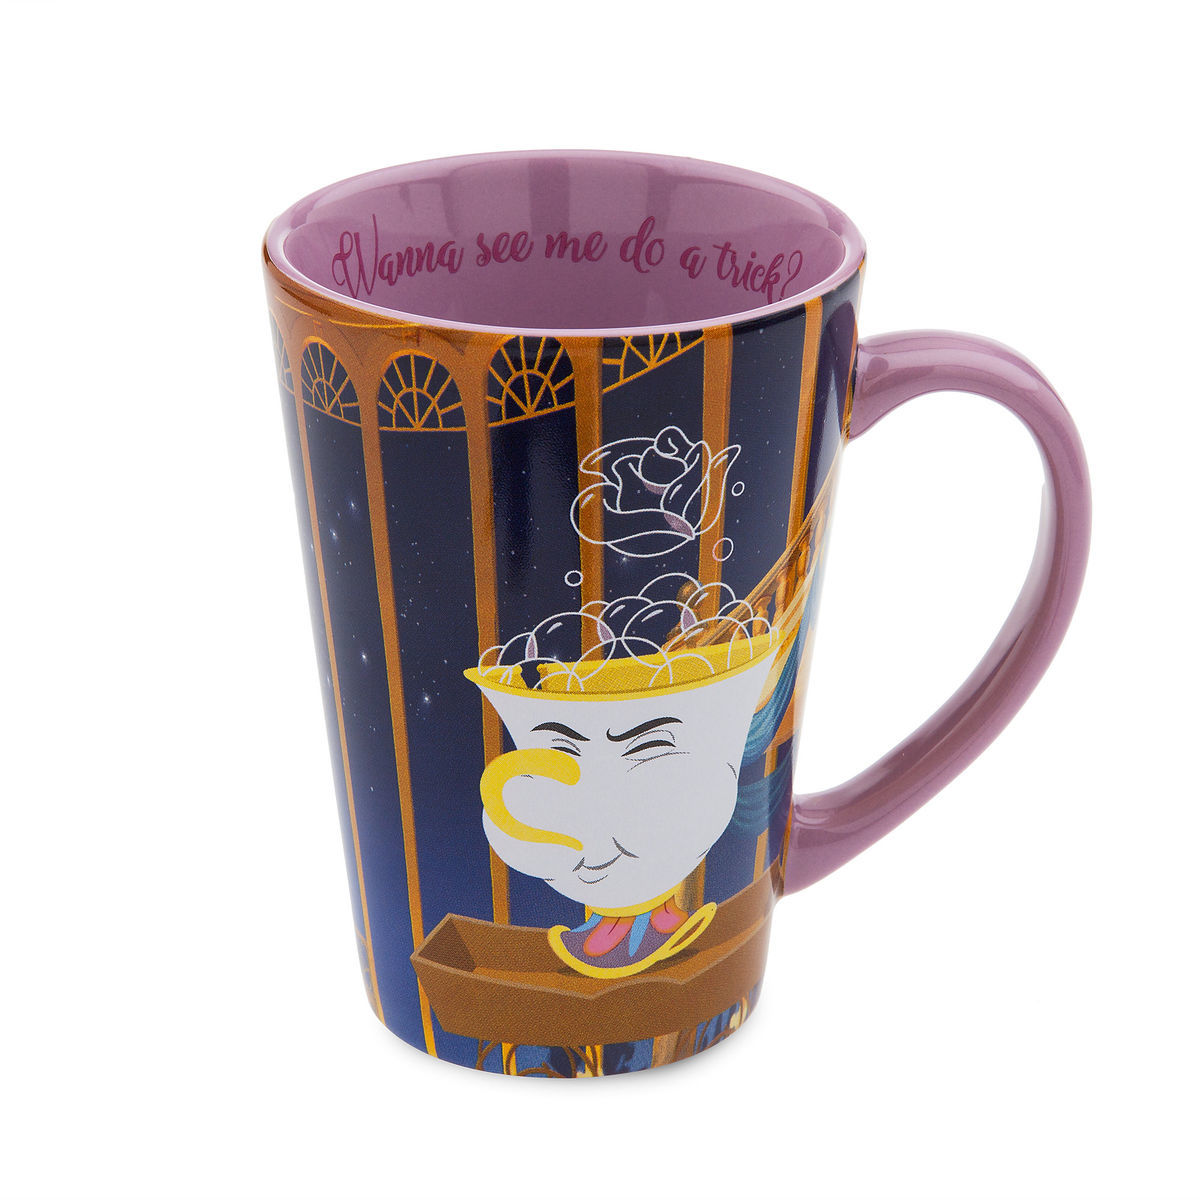 Disney Coffee Cup Beauty And The Beast Chip Wanna See Me